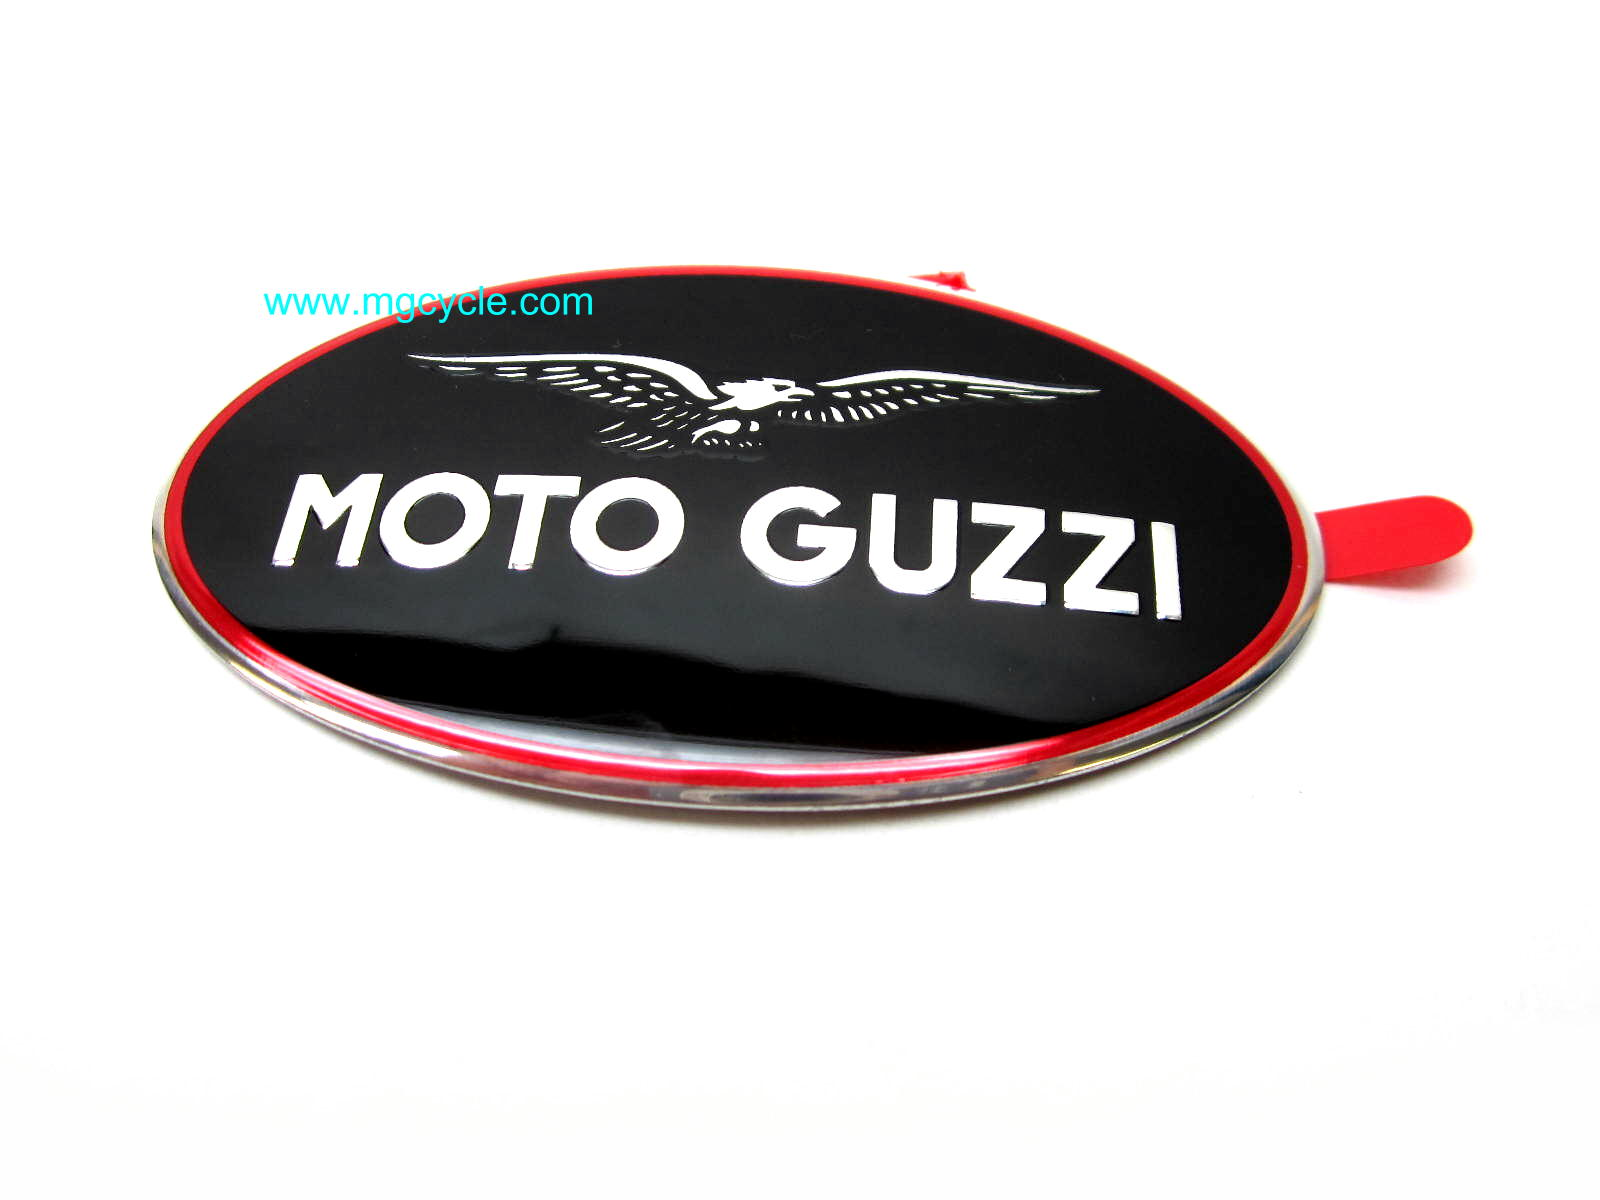 fuel tank emblem Breva 750, Breva 850, Breva 1100, right side